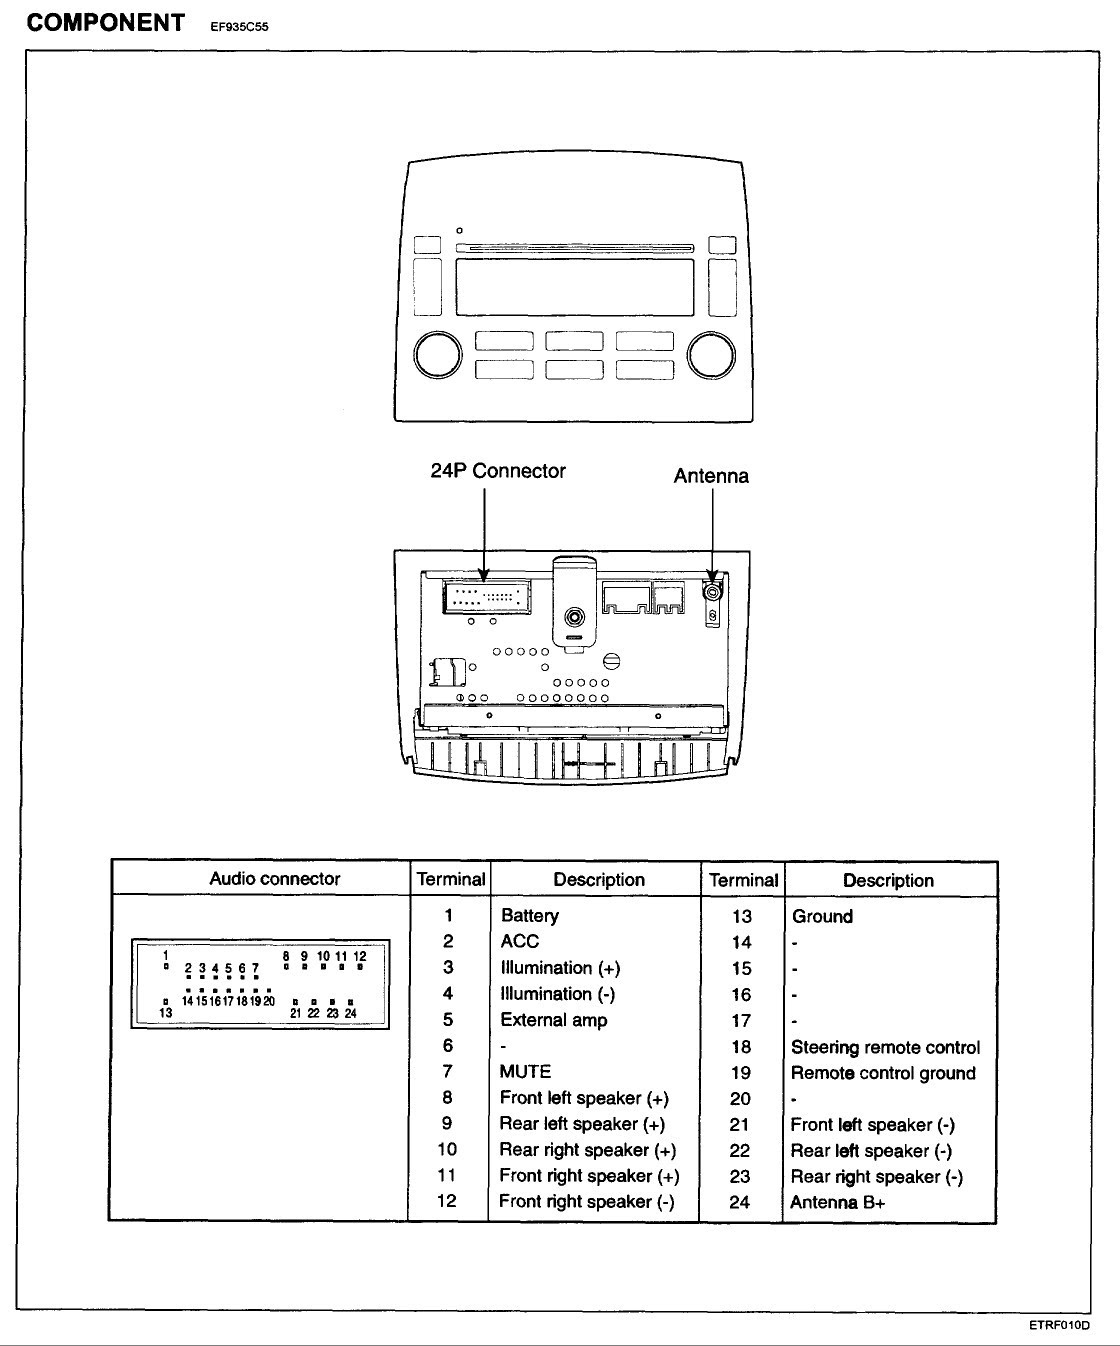 Hyundai Xg350 Radio Wiring Diagram - 335xi Fuse Diagram for Wiring Diagram  Schematics | 2005 Hyundai Tiburon Wiring Diagram |  | Wiring Diagram Schematics